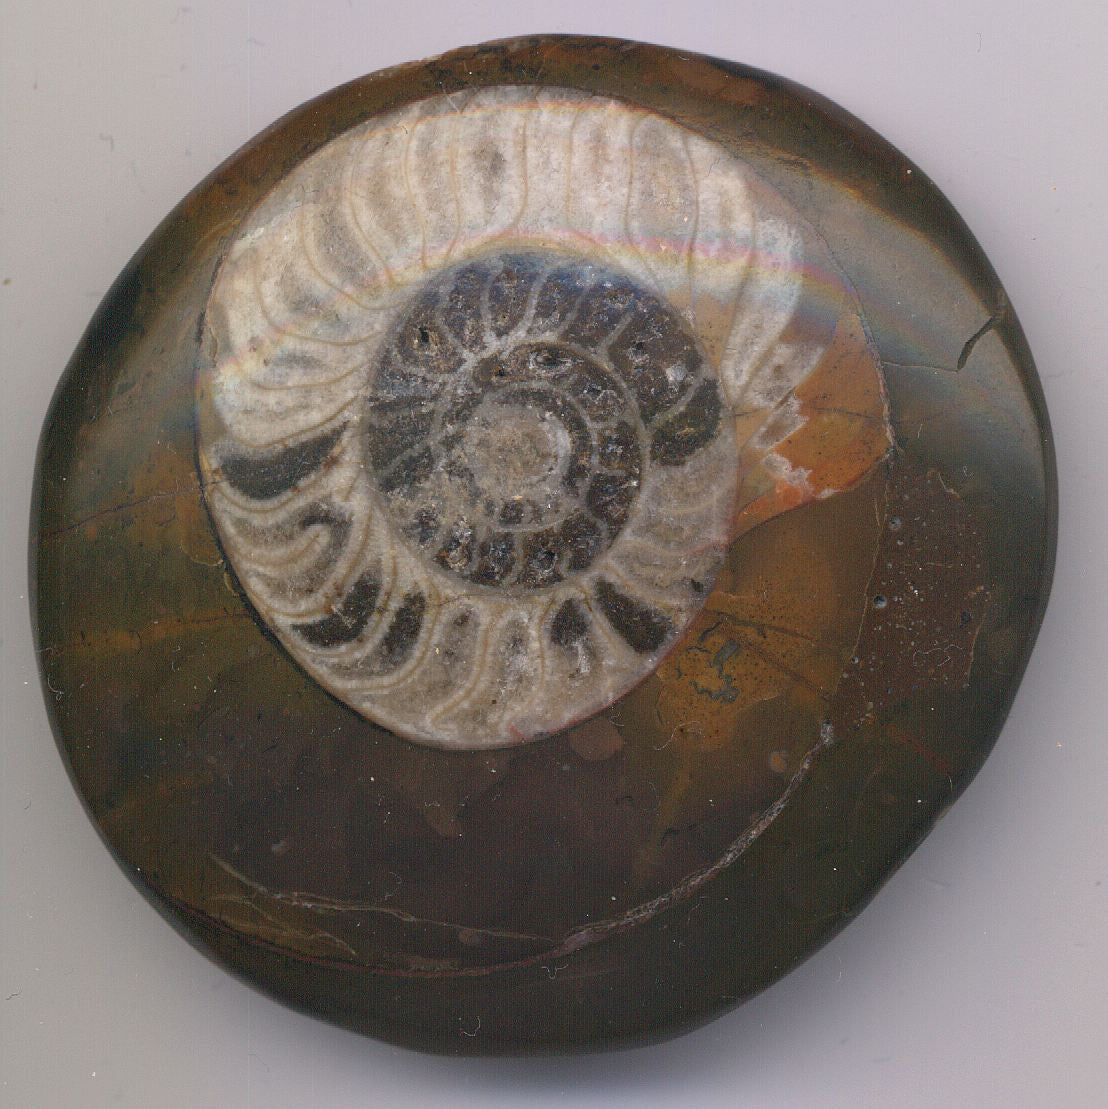 Fossilized Ammonite Seashell Polished 1 Inch w Info Card - Off The Wall Toys and Gifts